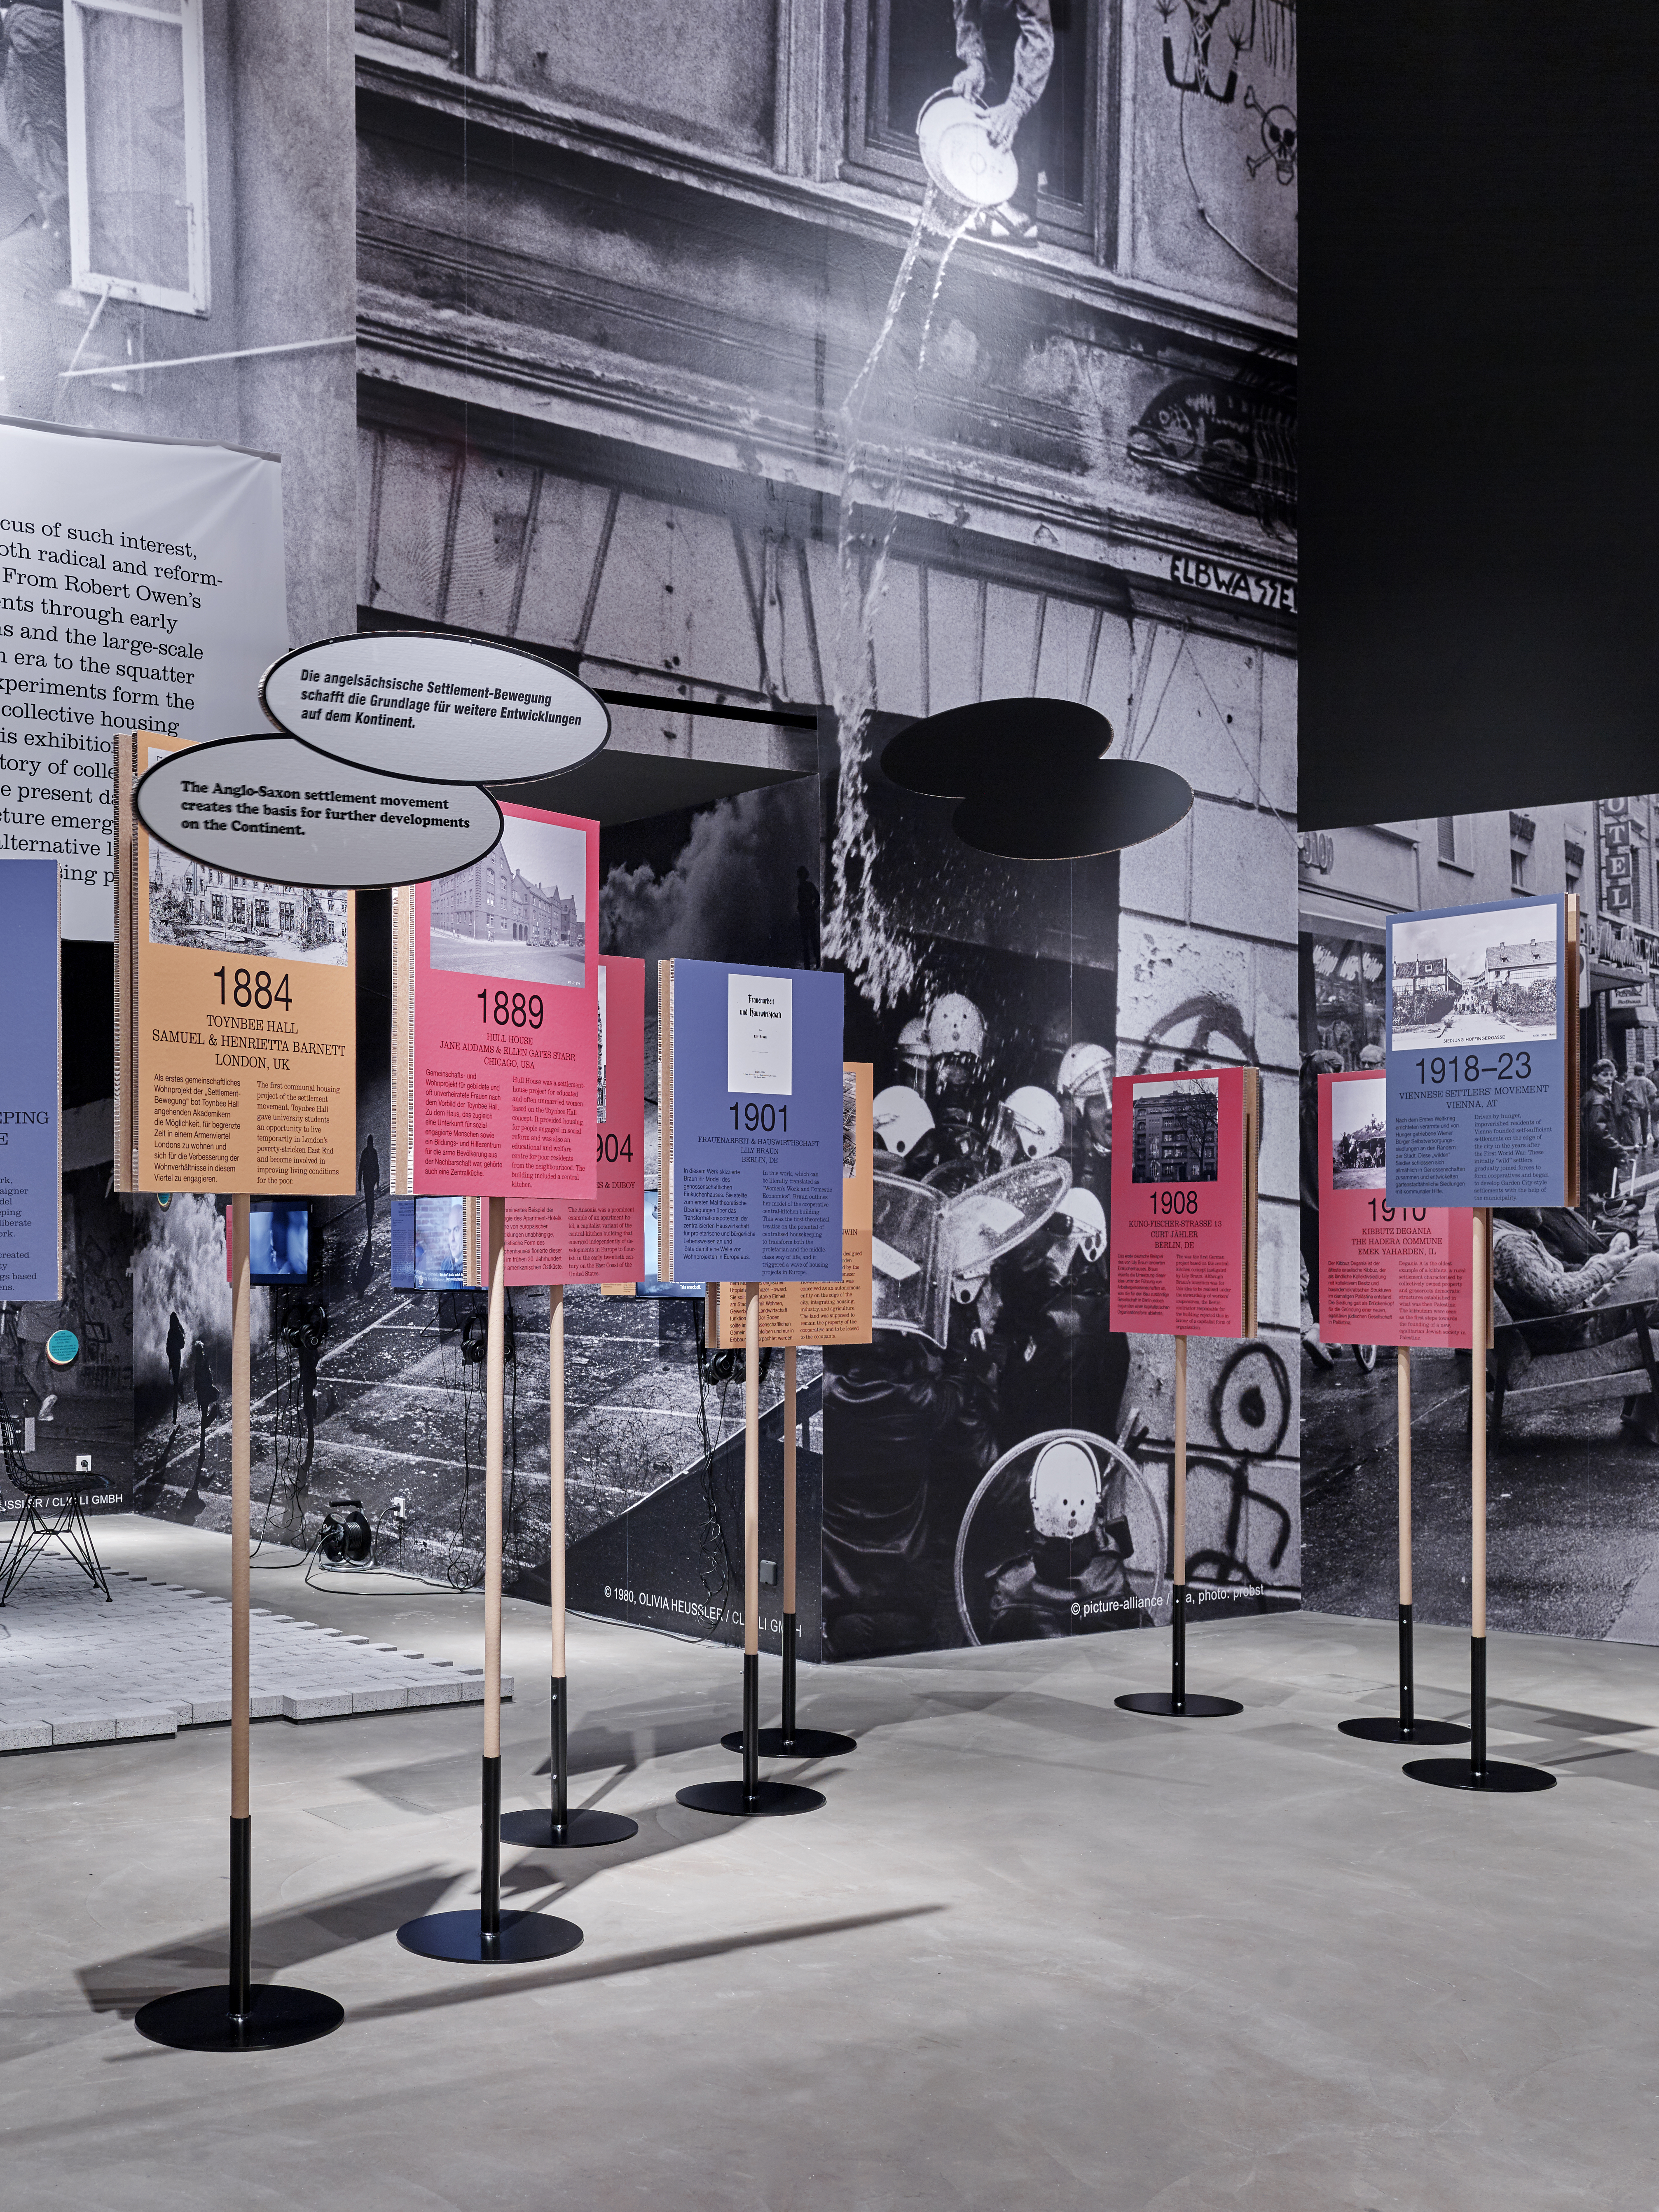 The vitra design museum shows the exhibition together stylepark the exhibition looks also on the history of cooperative settlements and community forms of dwelling solutioingenieria Images